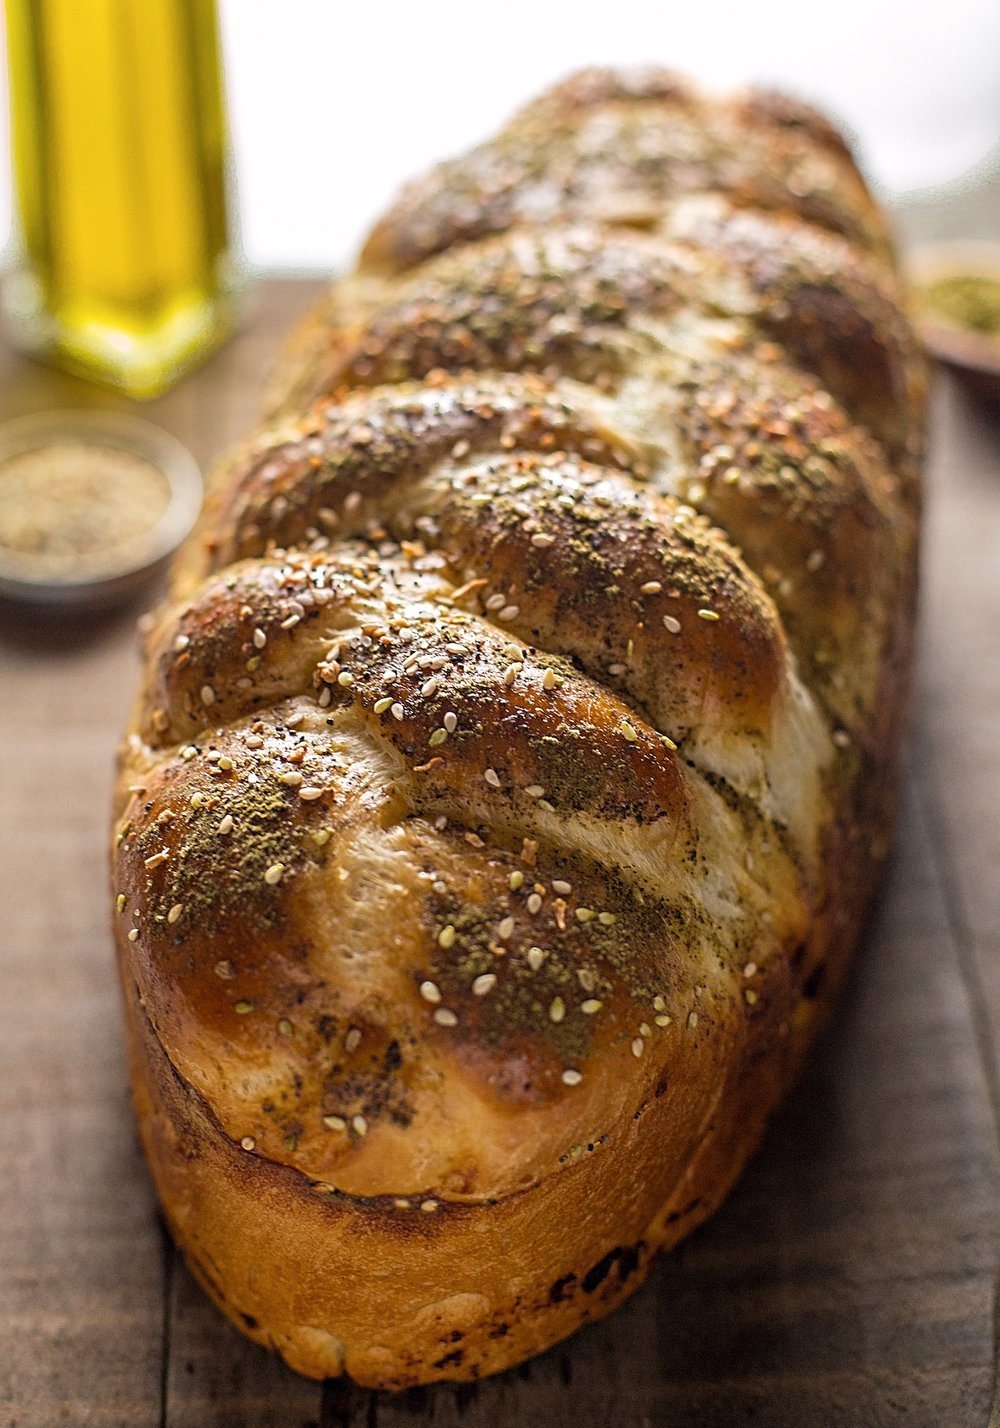 Egg-Free Garlic Crusted Challah: soft, doughy, glossy, egg-free challah bread made with a delicious olive oil-garlic crust. | TrufflesandTrends.com